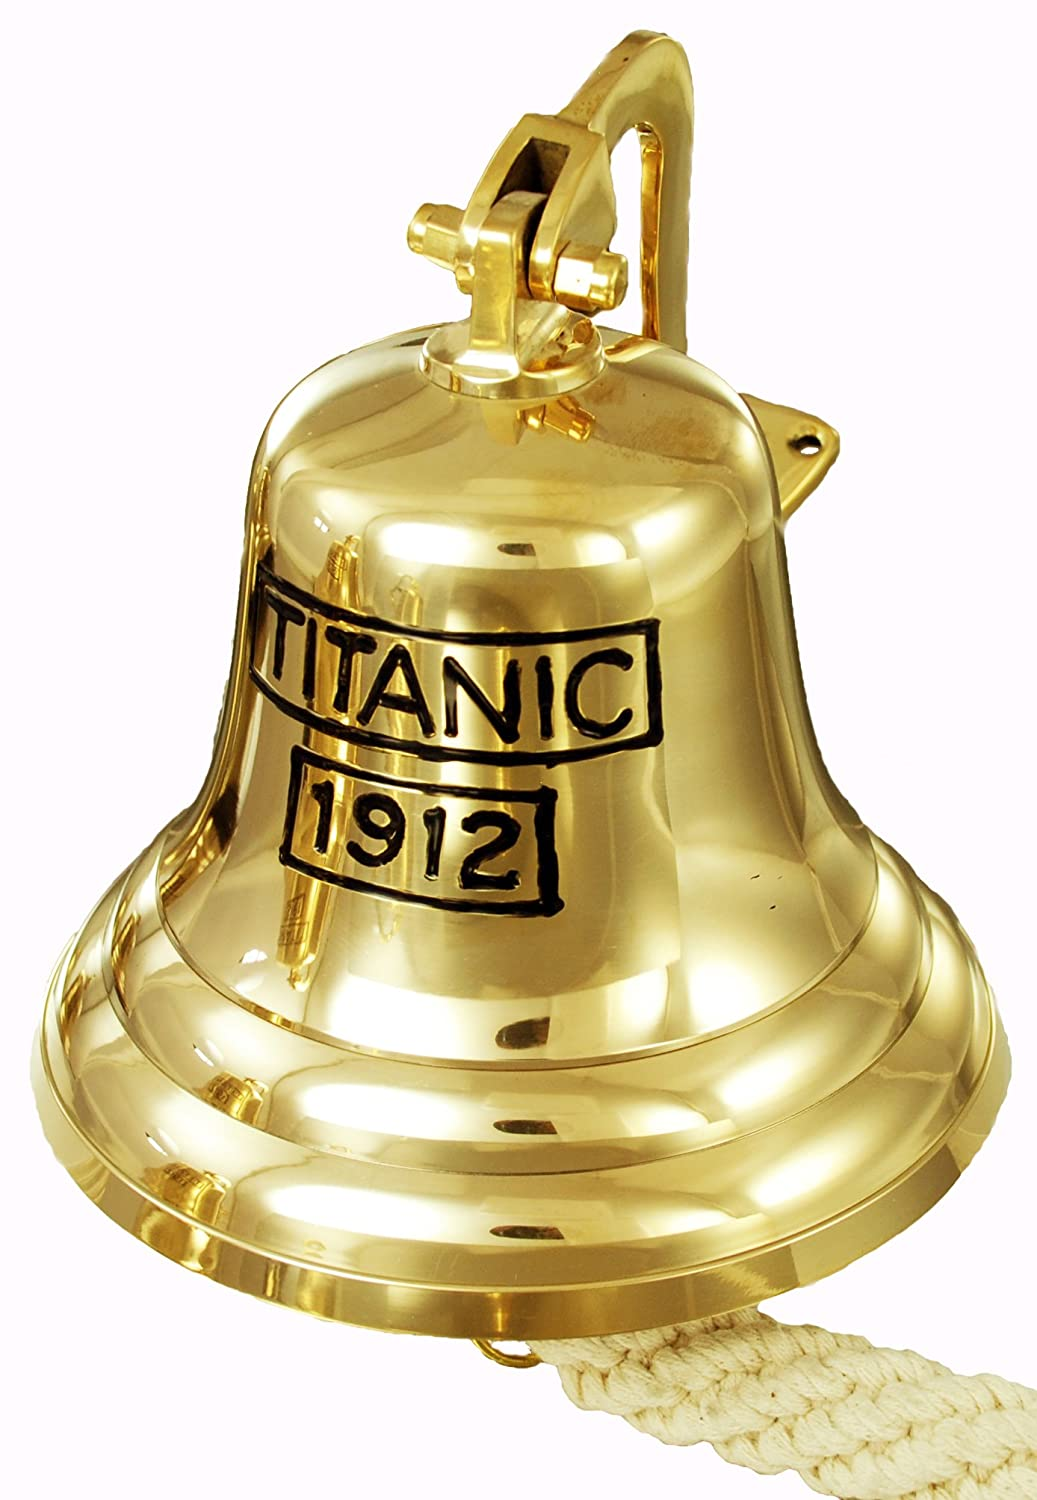 Buckingham Titanic 1912  Telefono Montaggio a Parete in Ottone Massiccio Pub/Porta/Last ordini/Ship Bell, Oro, 20  cm 20 cm B & I International Ltd. 30762